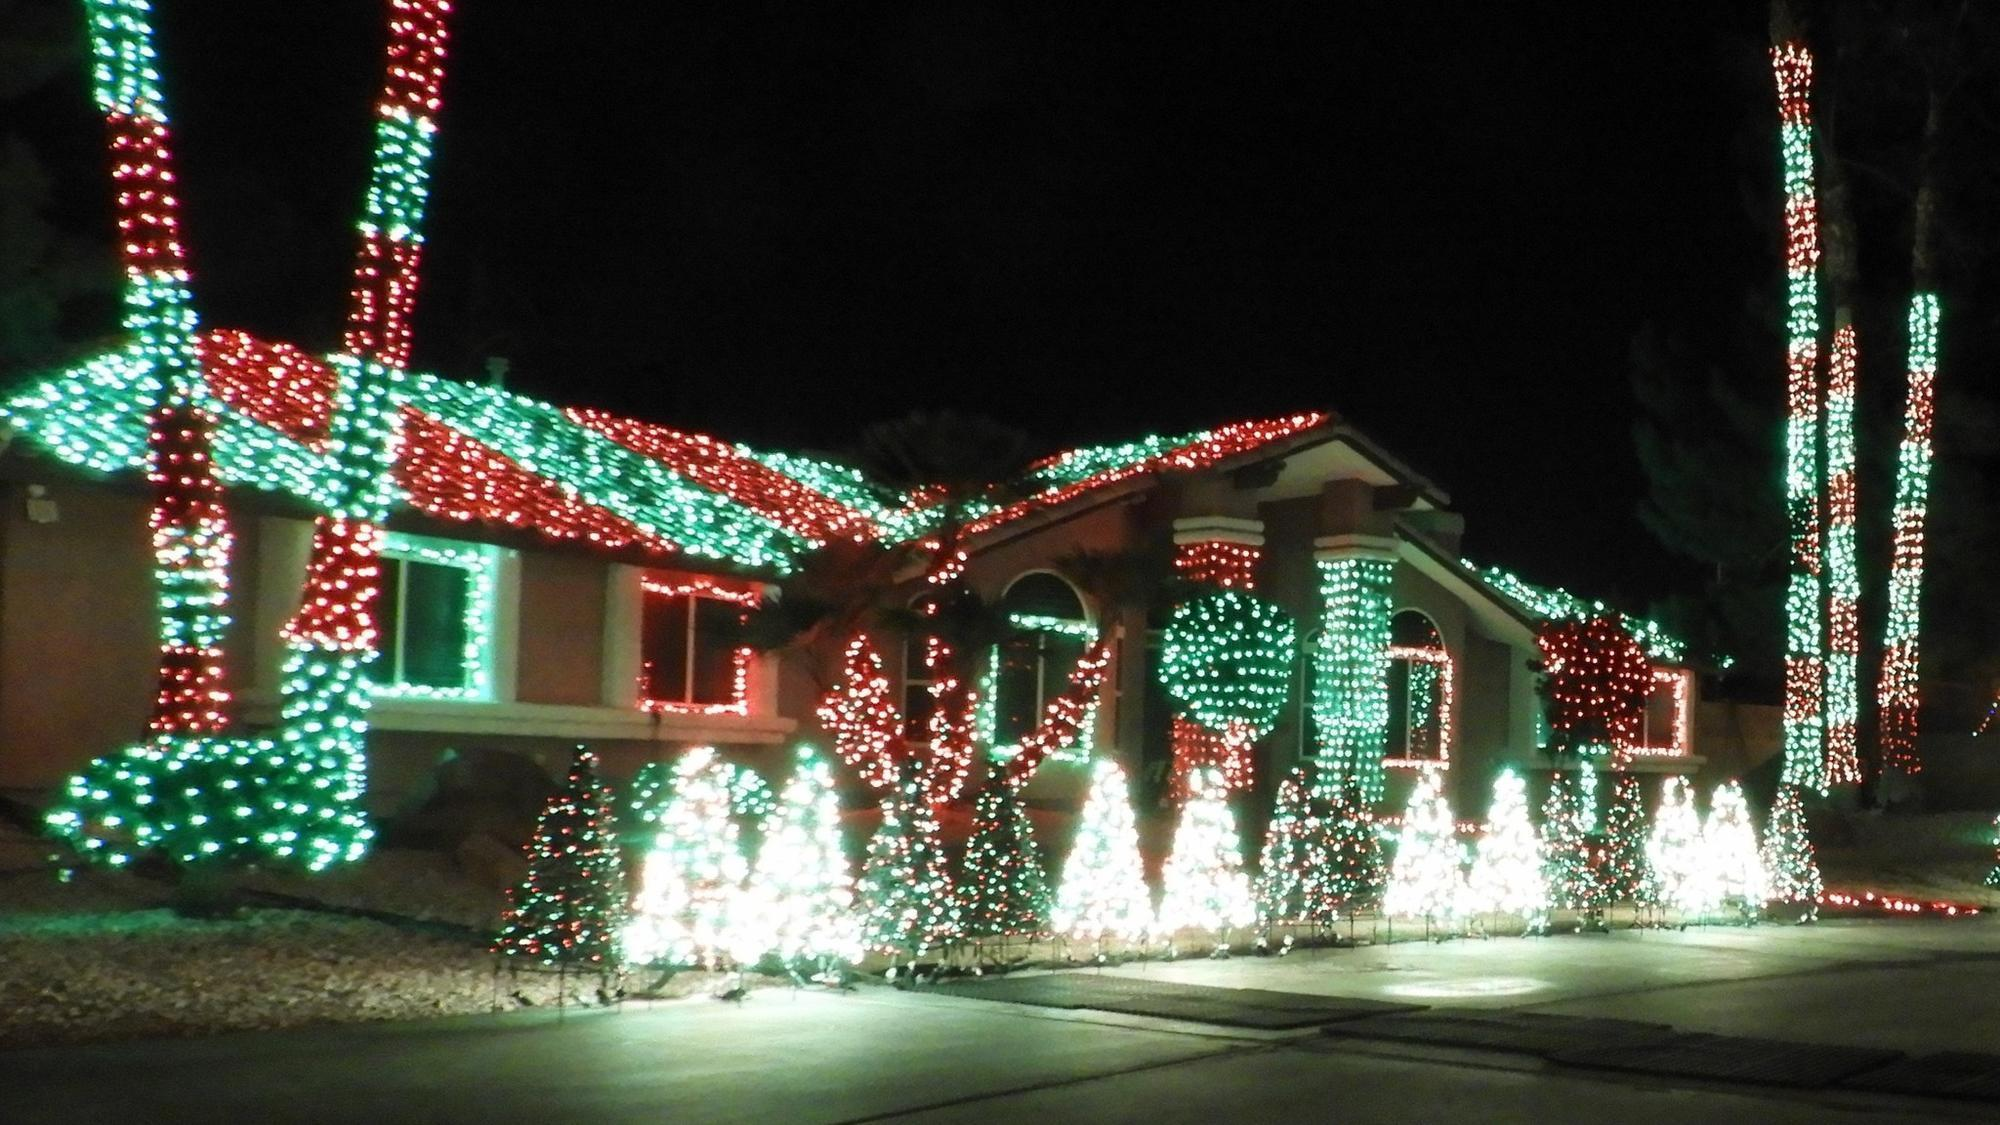 Las vegas 39 best holiday light display a hypnotist 39 s for When does las vegas decorate for christmas